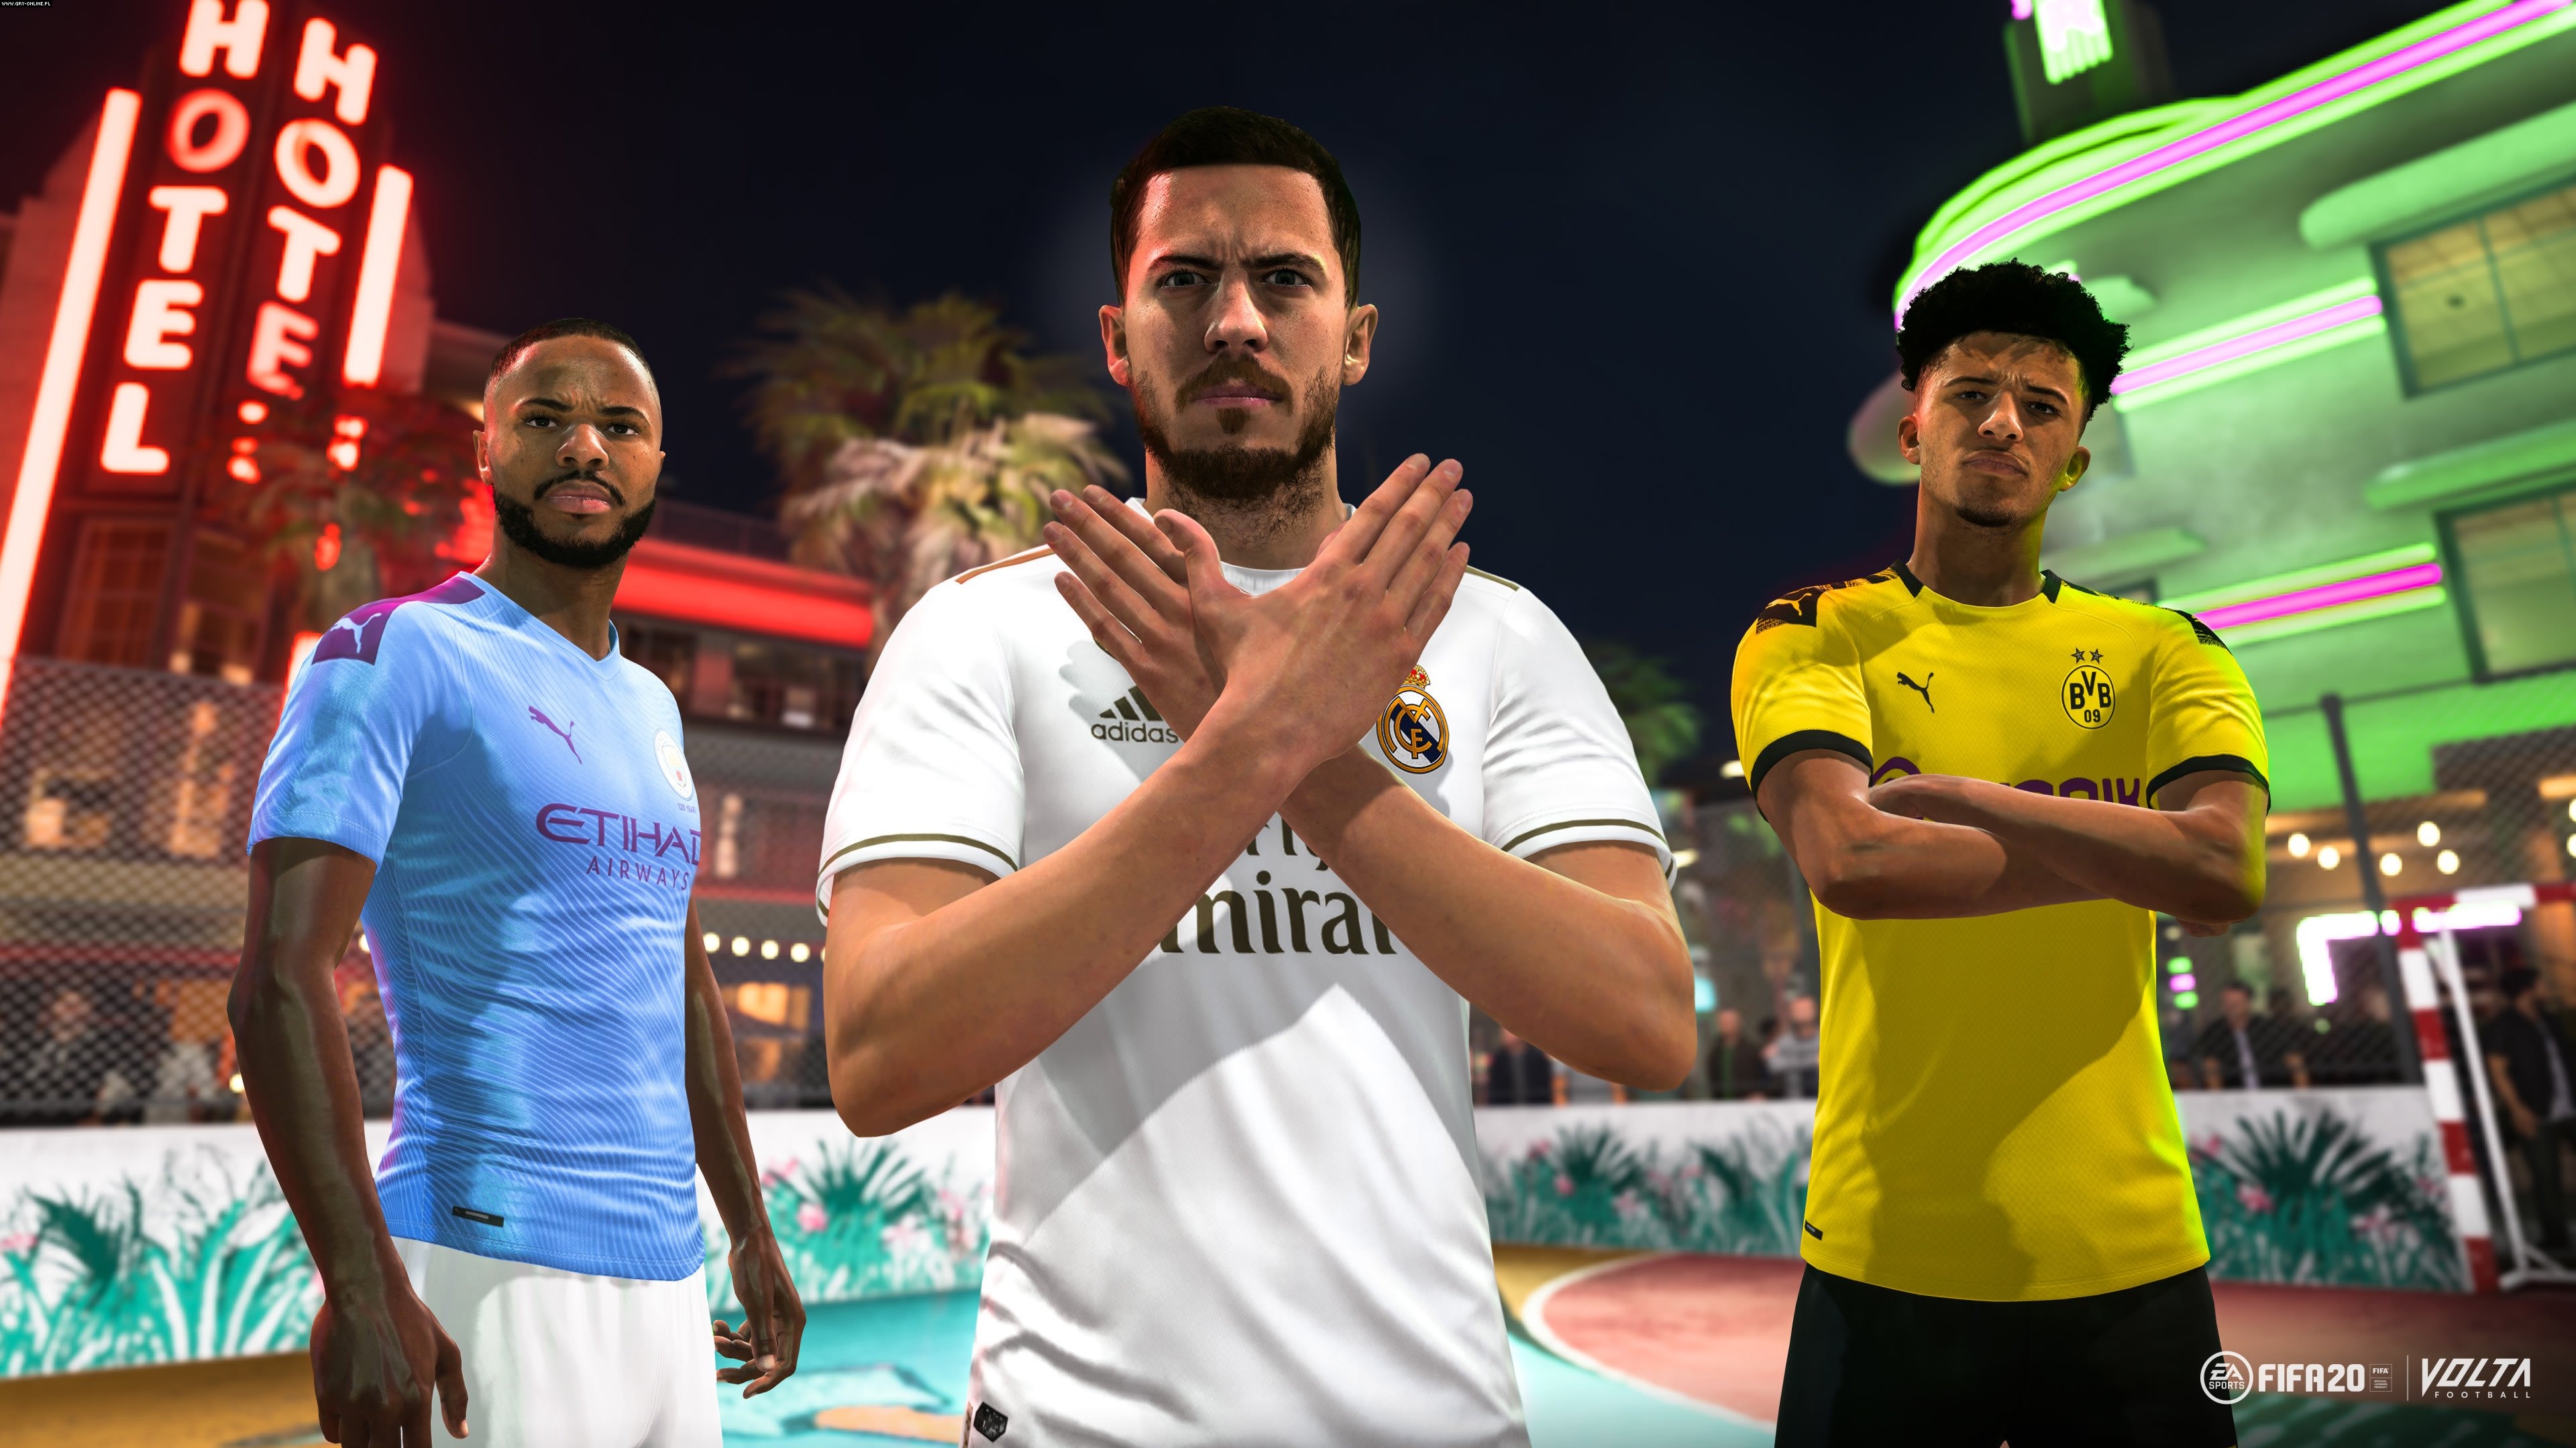 FIFA 20 PC, PS4, XONE, Switch Games Image 2/28, EA Sports, Electronic Arts Inc.